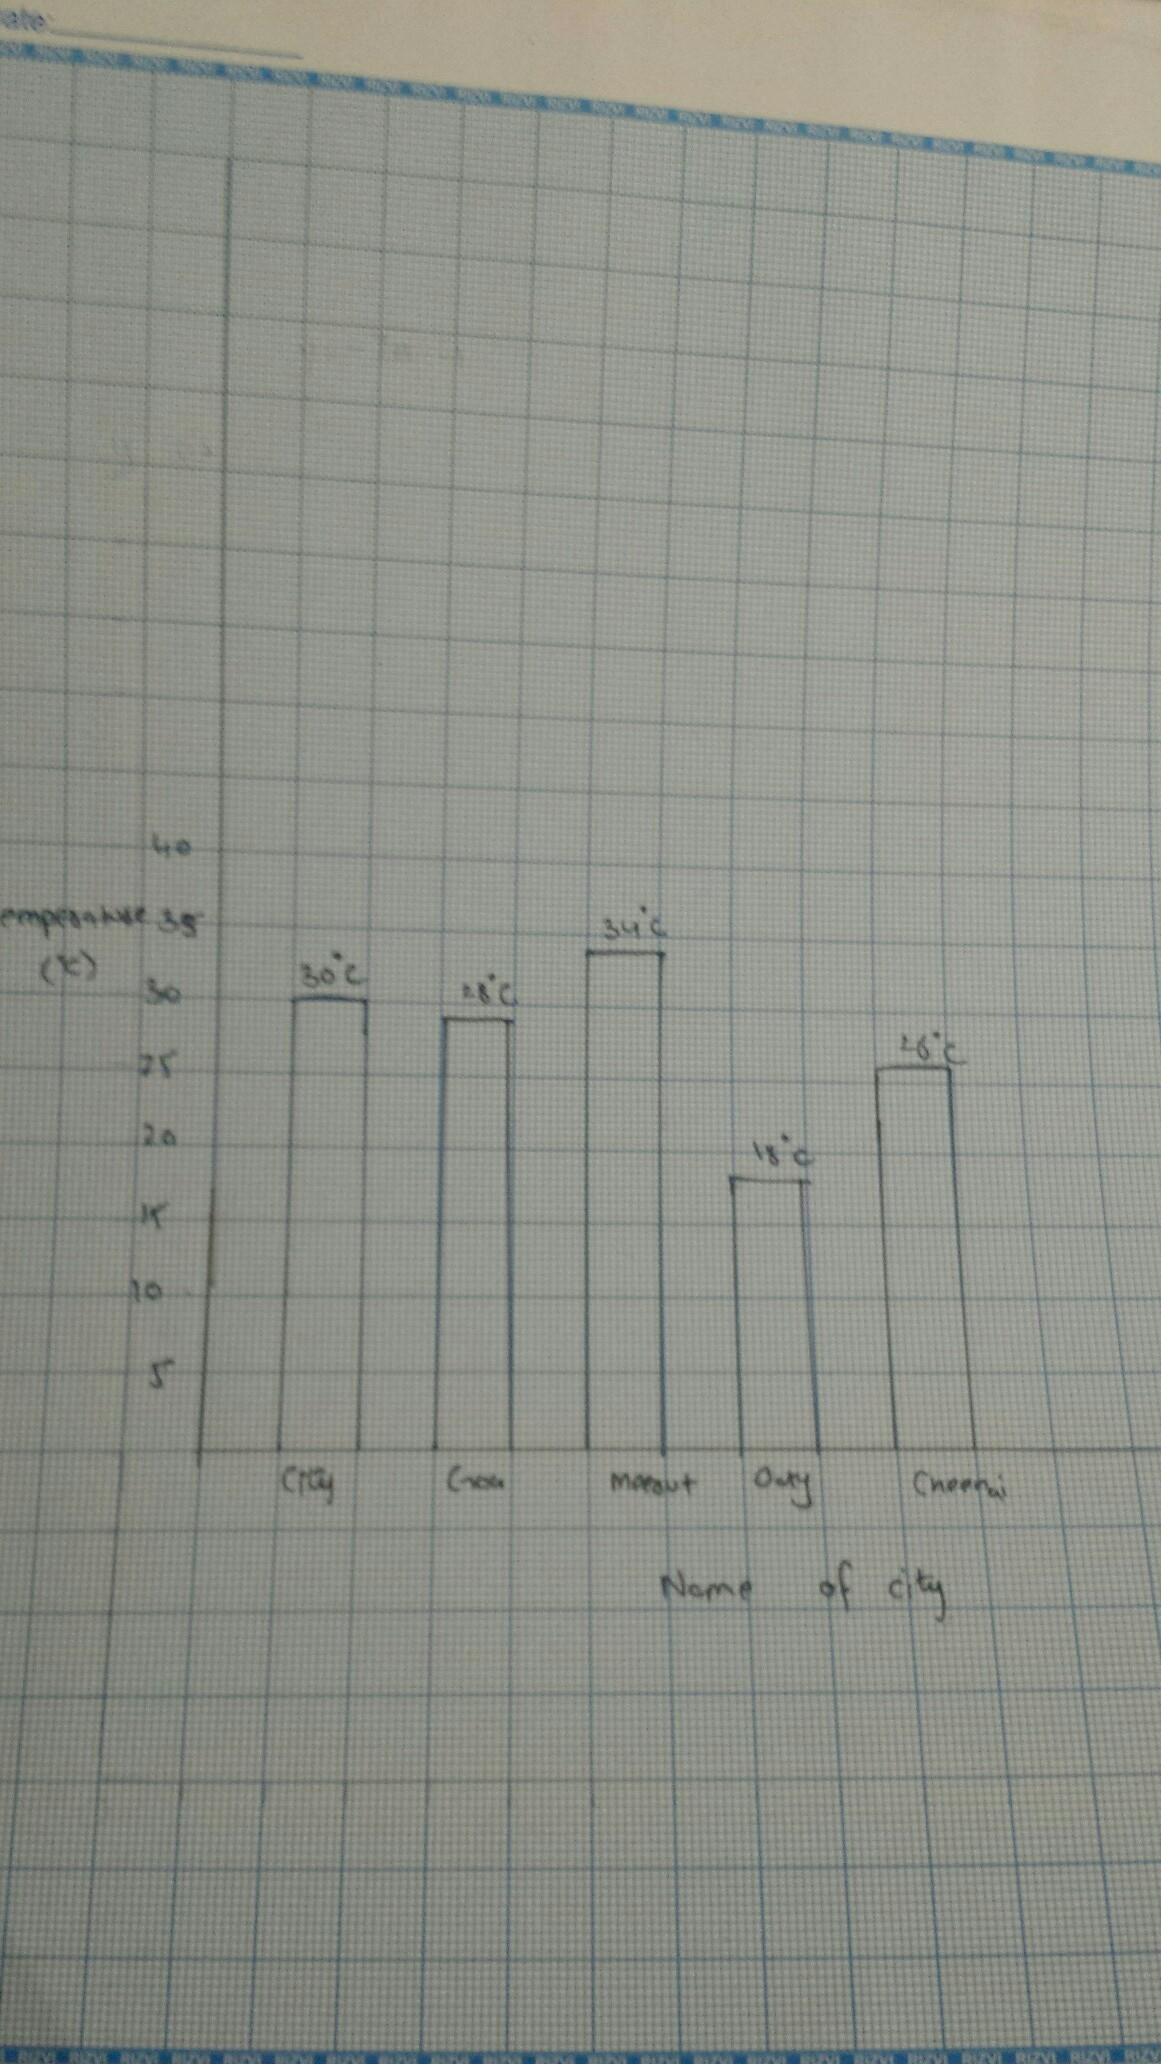 Draw A Bar Graph To Represent The Following Data City 30 Celsius